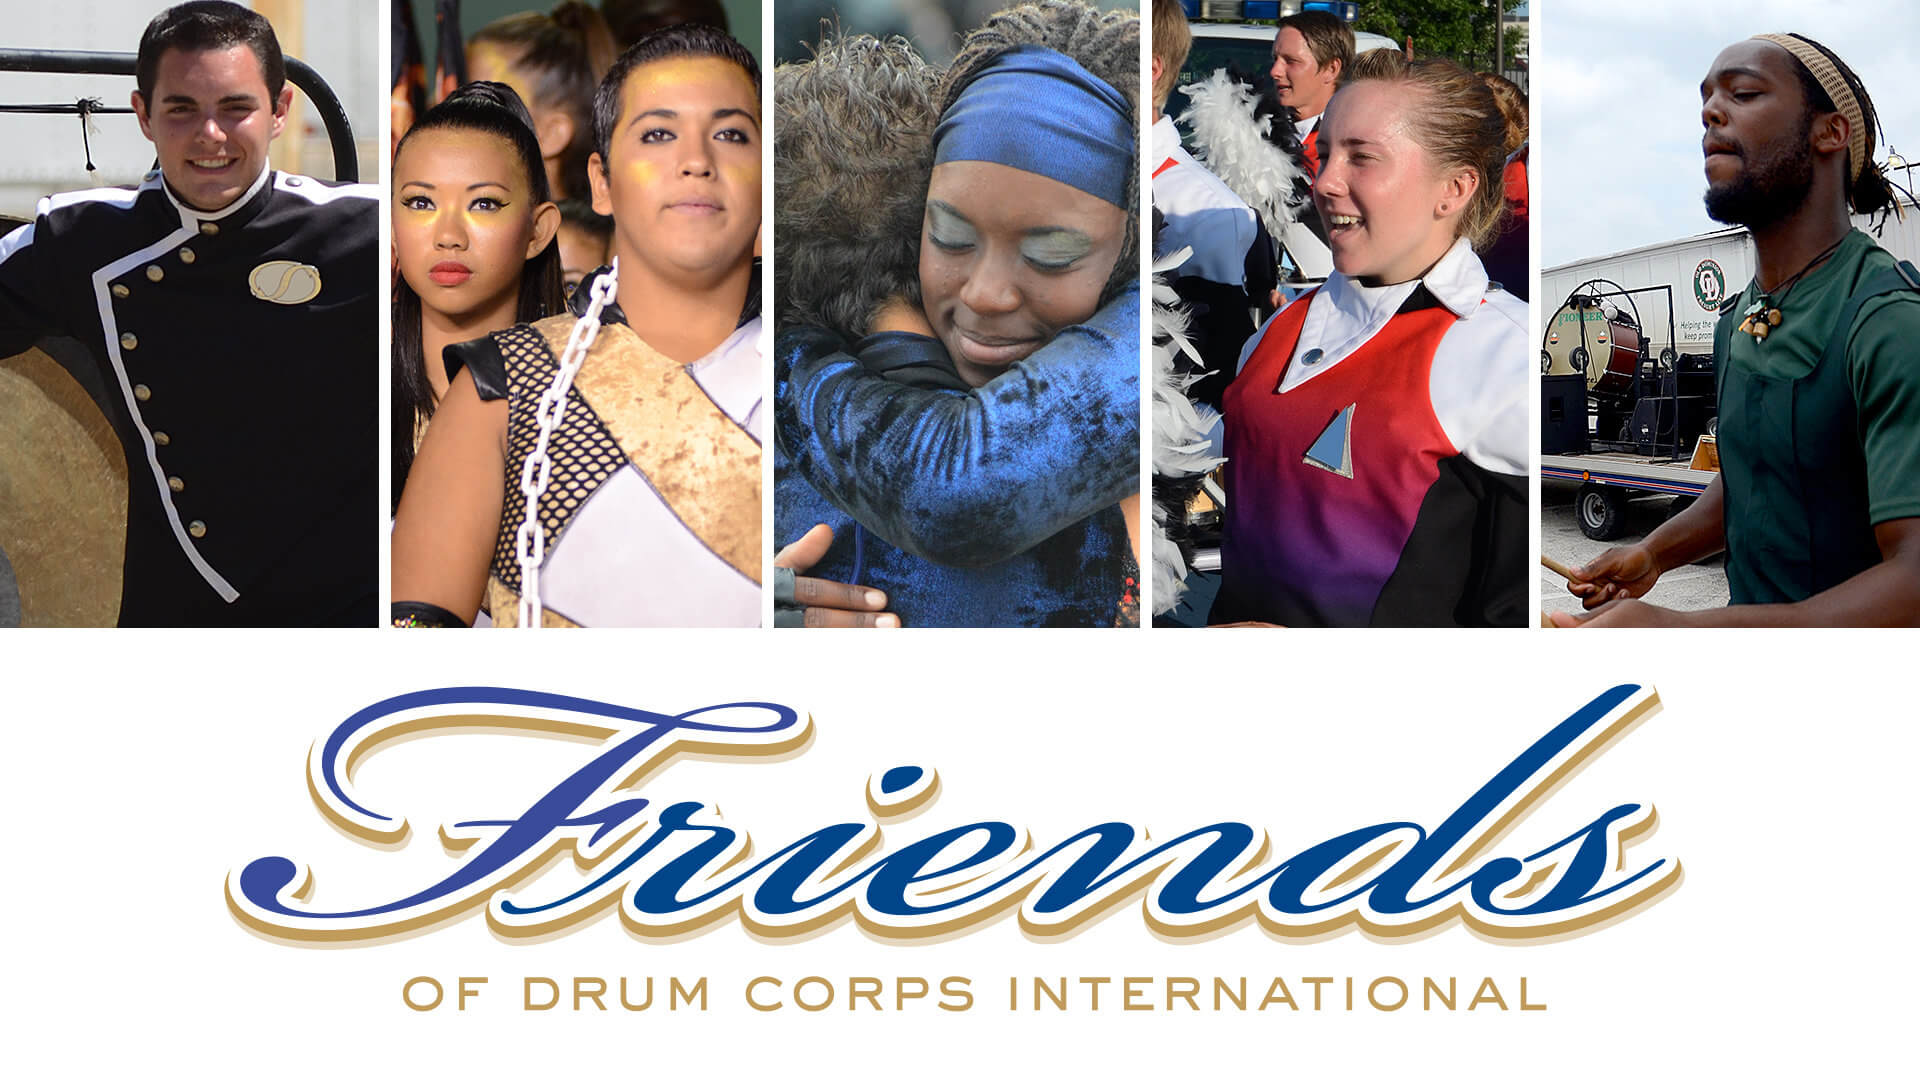 Friends of DCI: Encourage and experience achievement at a higher level